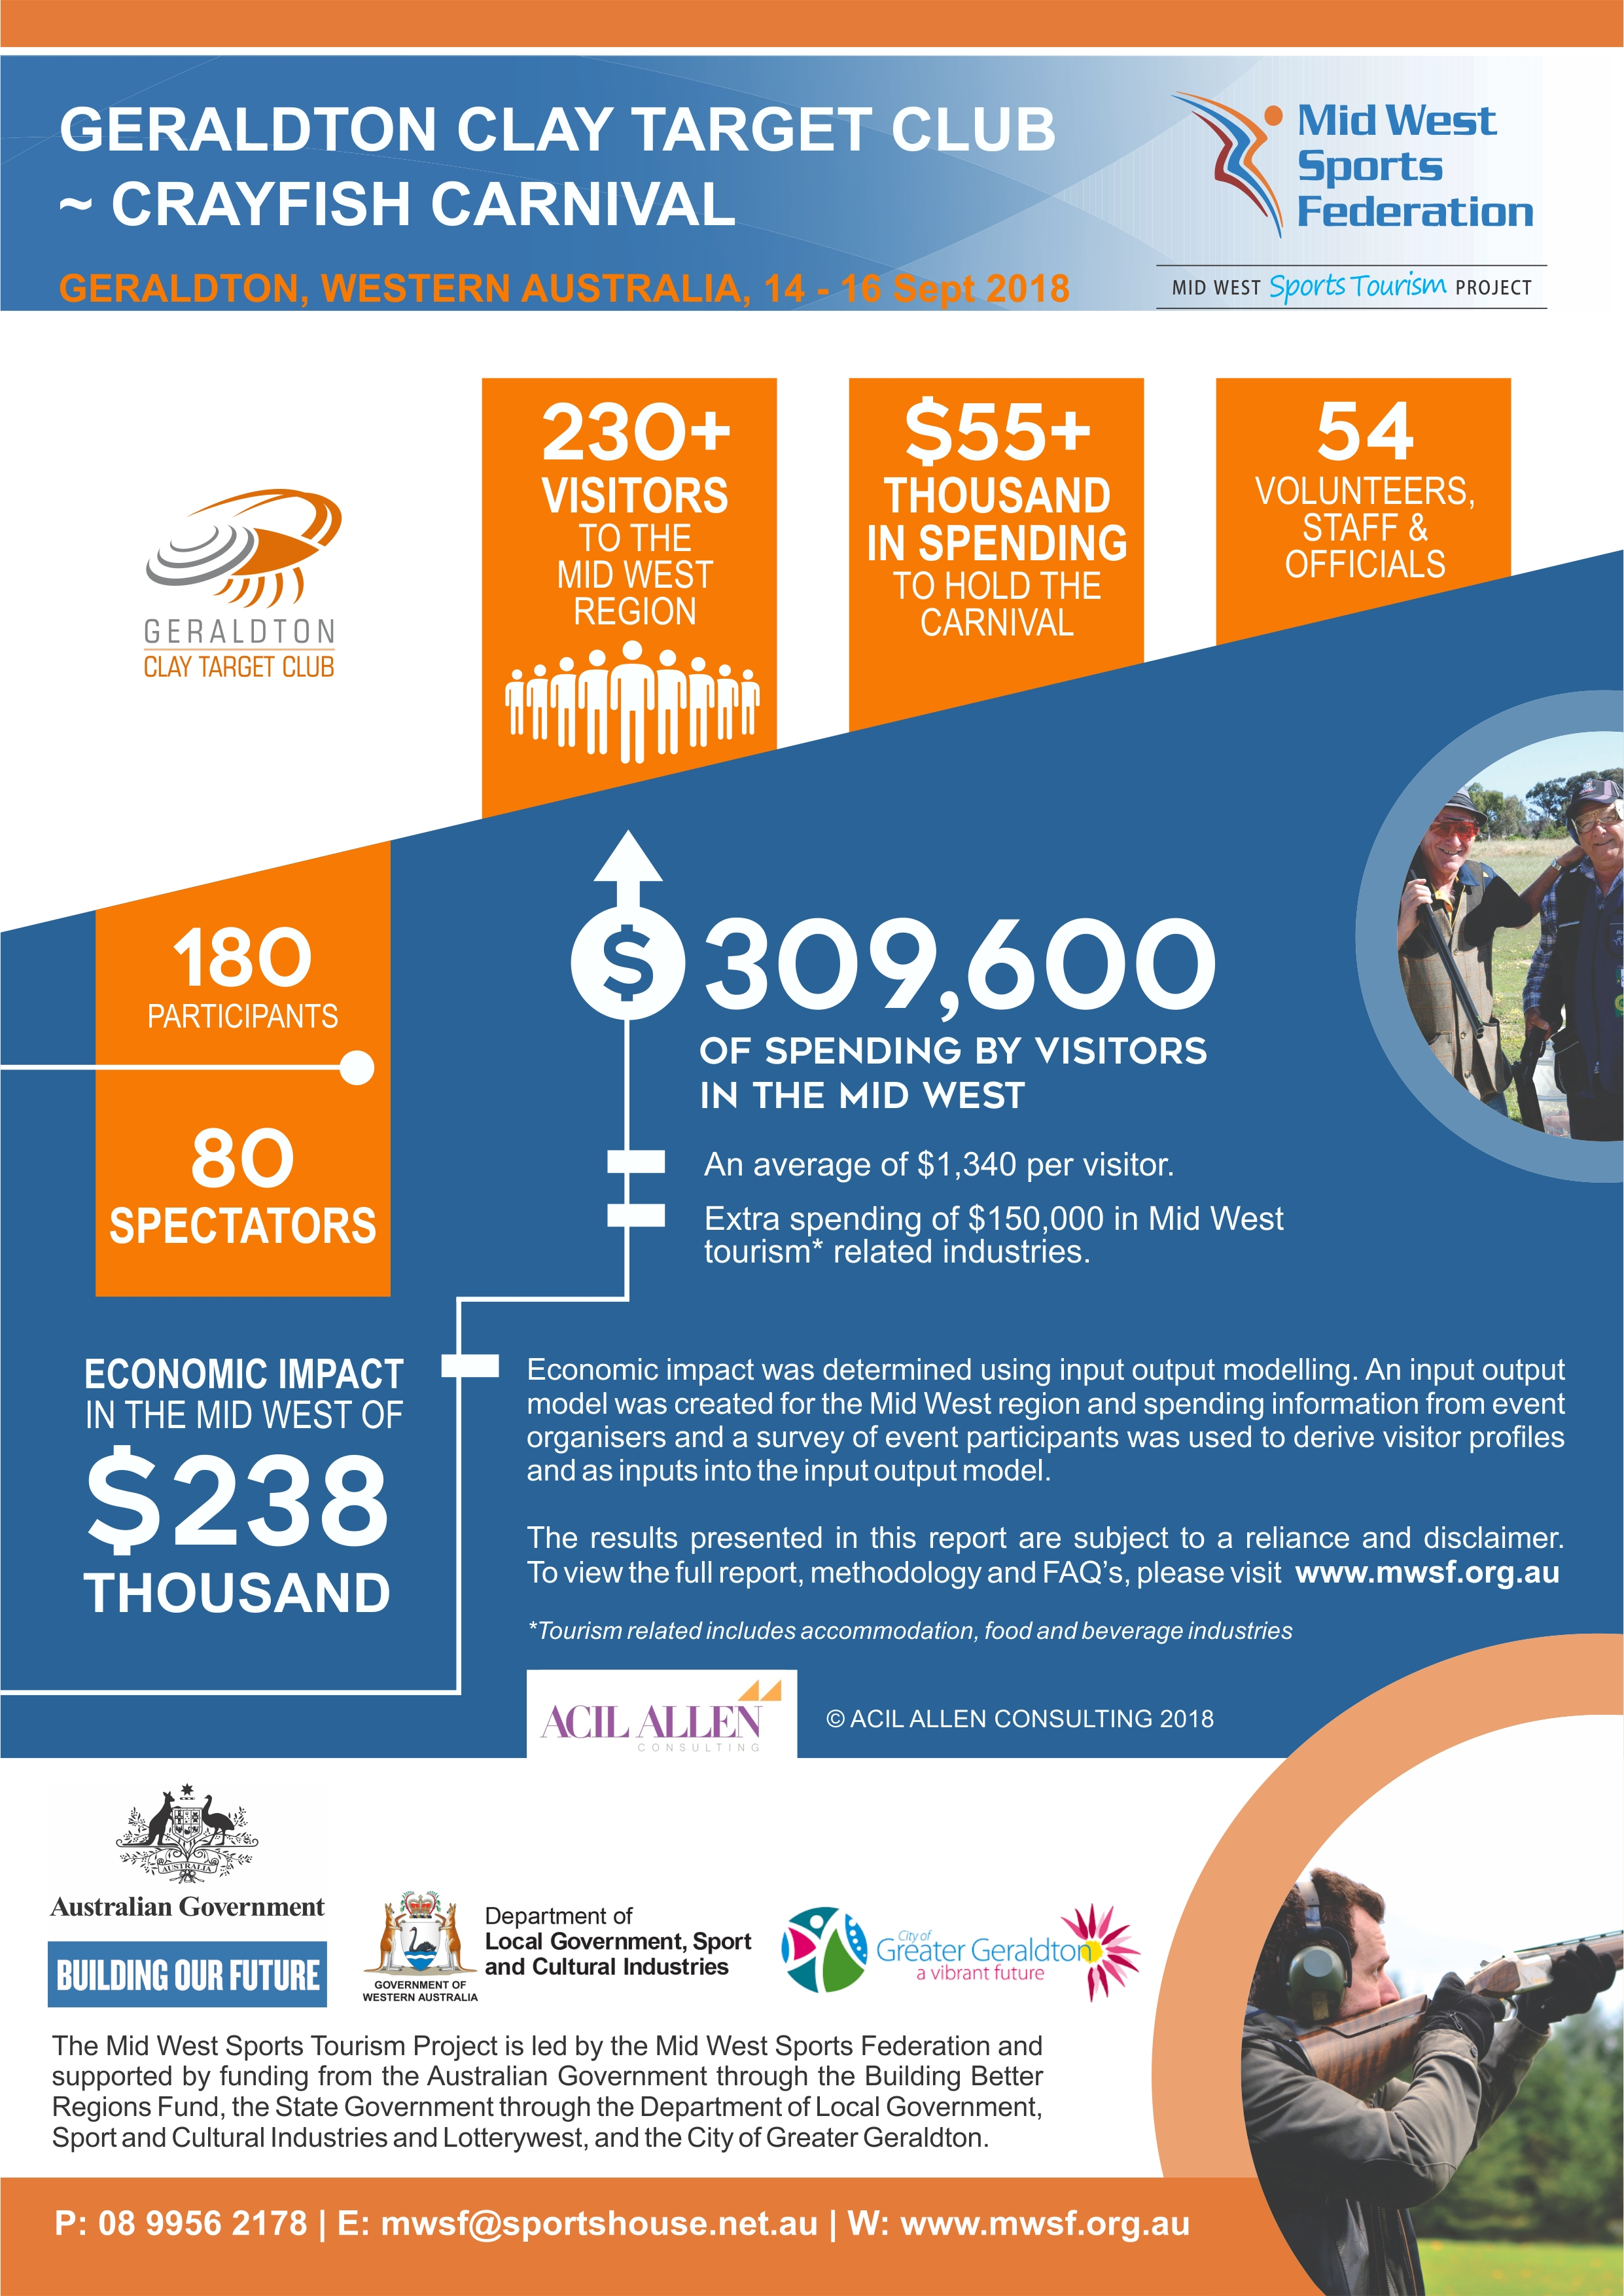 MWSF_Geraldton ClayTC_Infographic